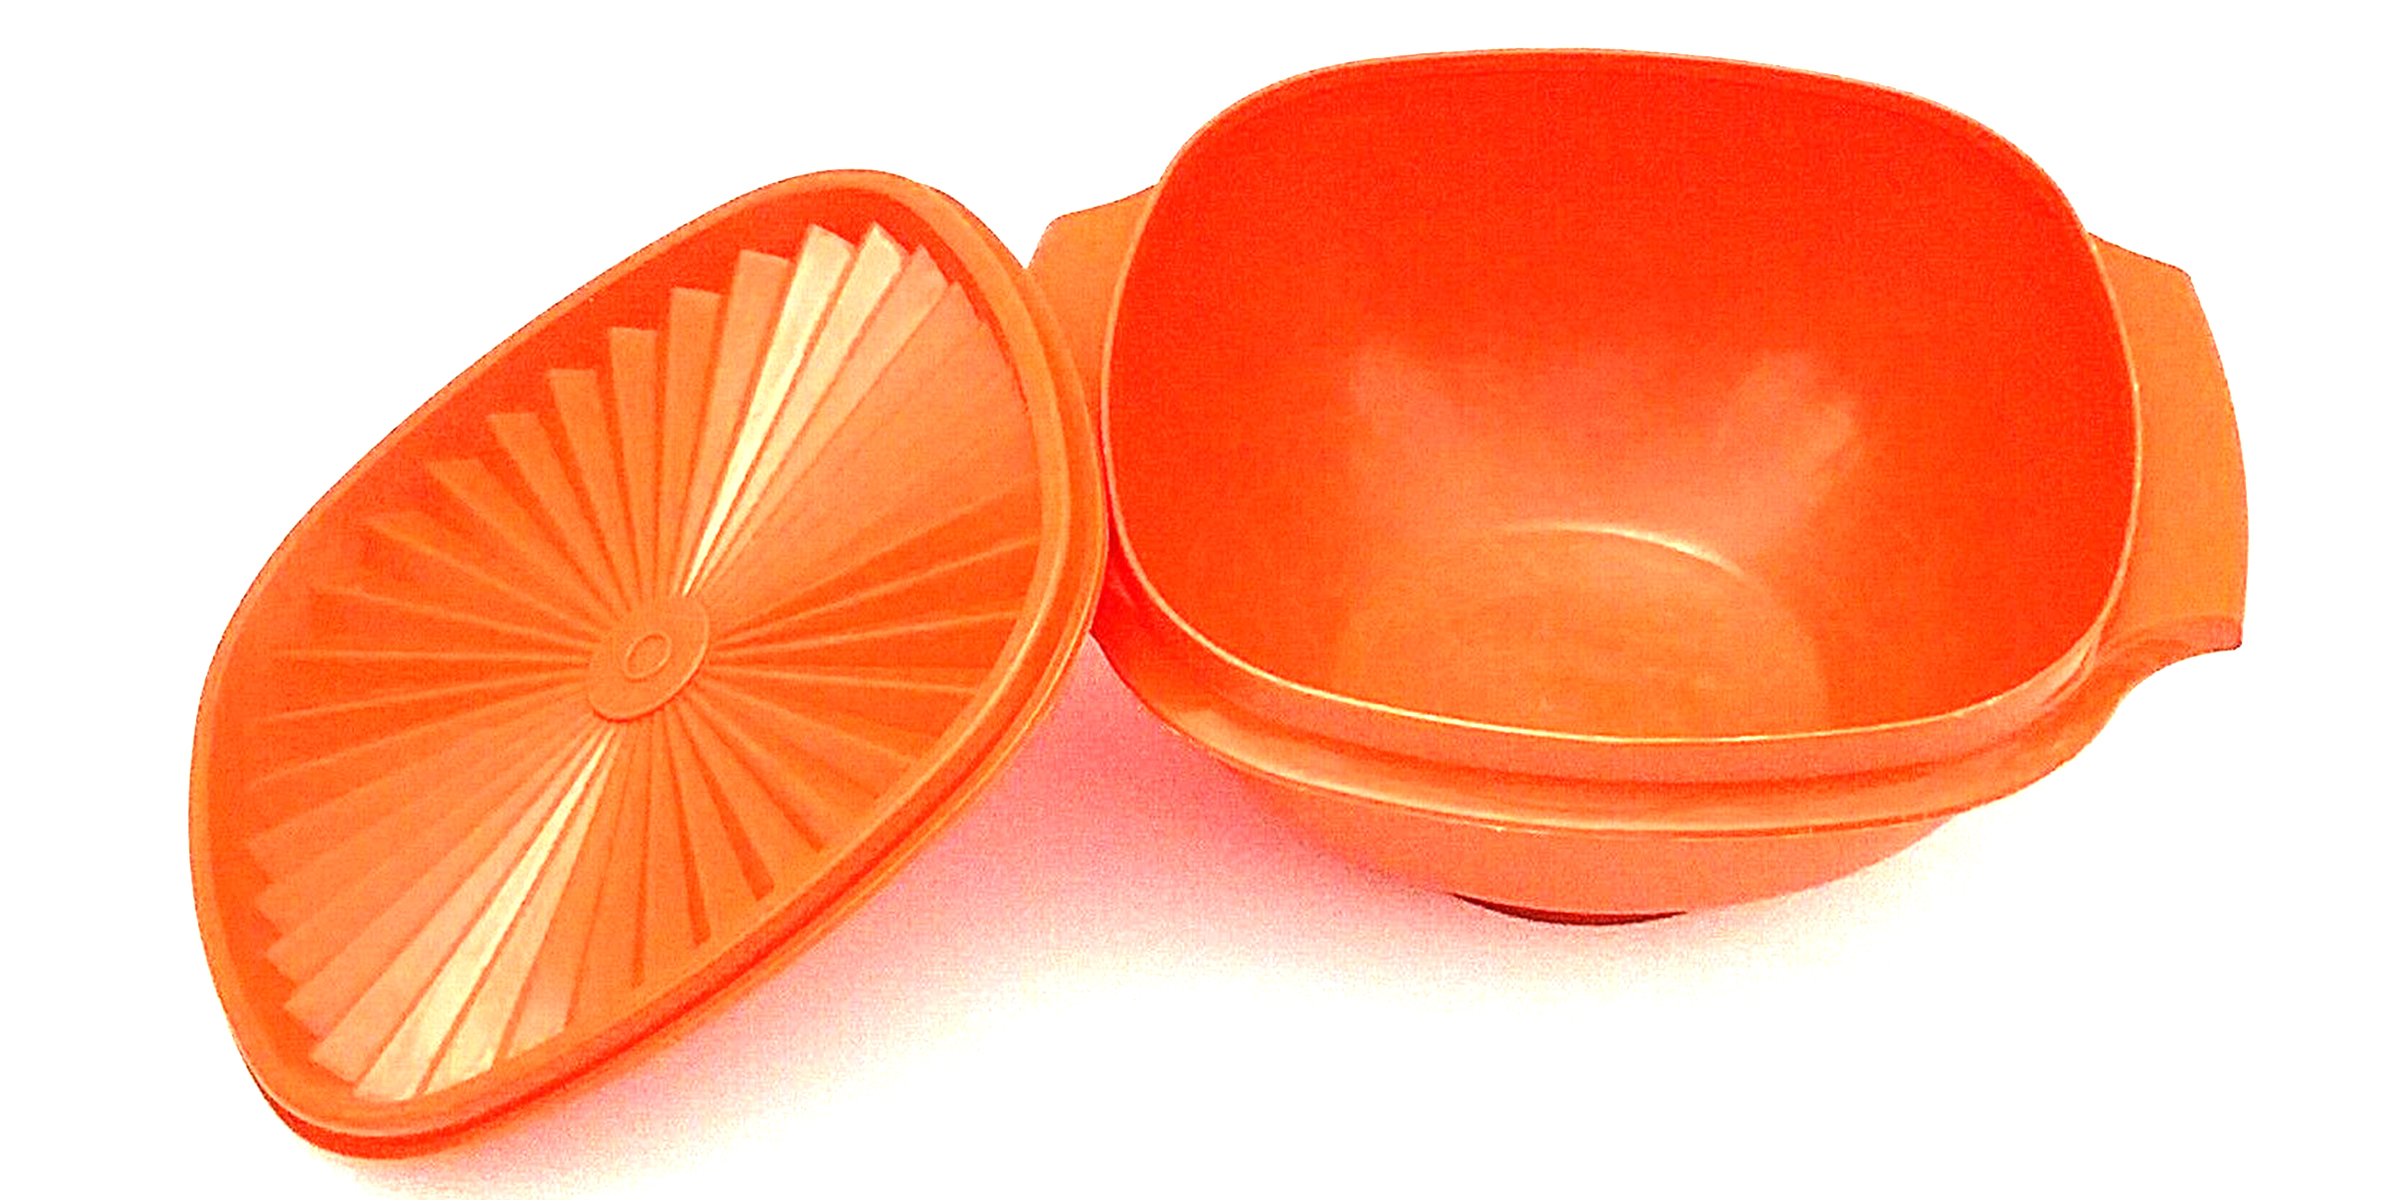 Vintage Tupperware May Be Worth A Lot More Than You Think